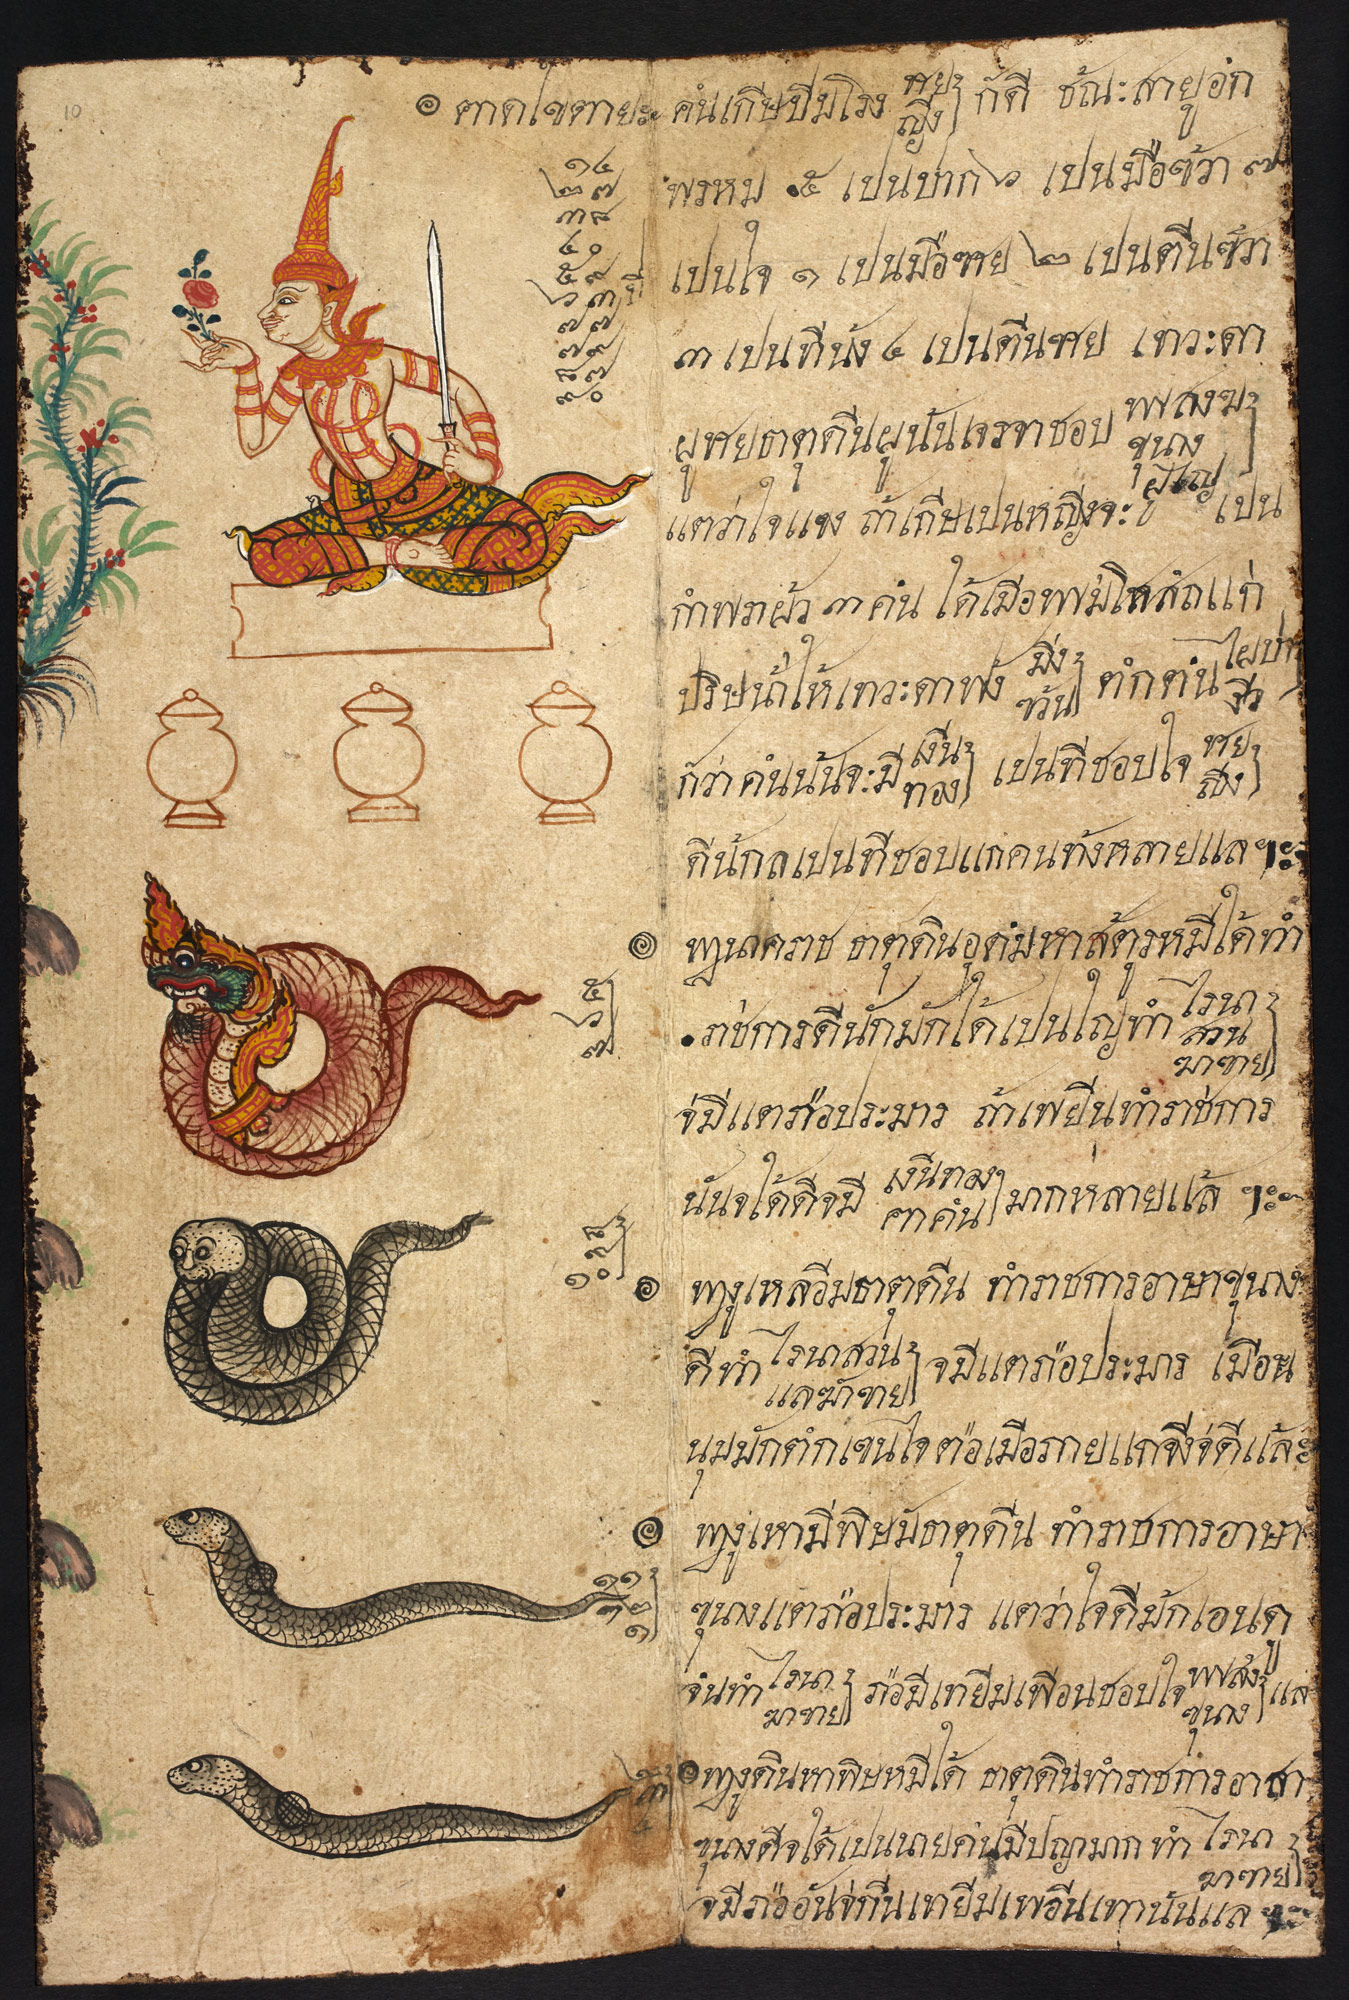 What's my Thai horoscope? - The British Library